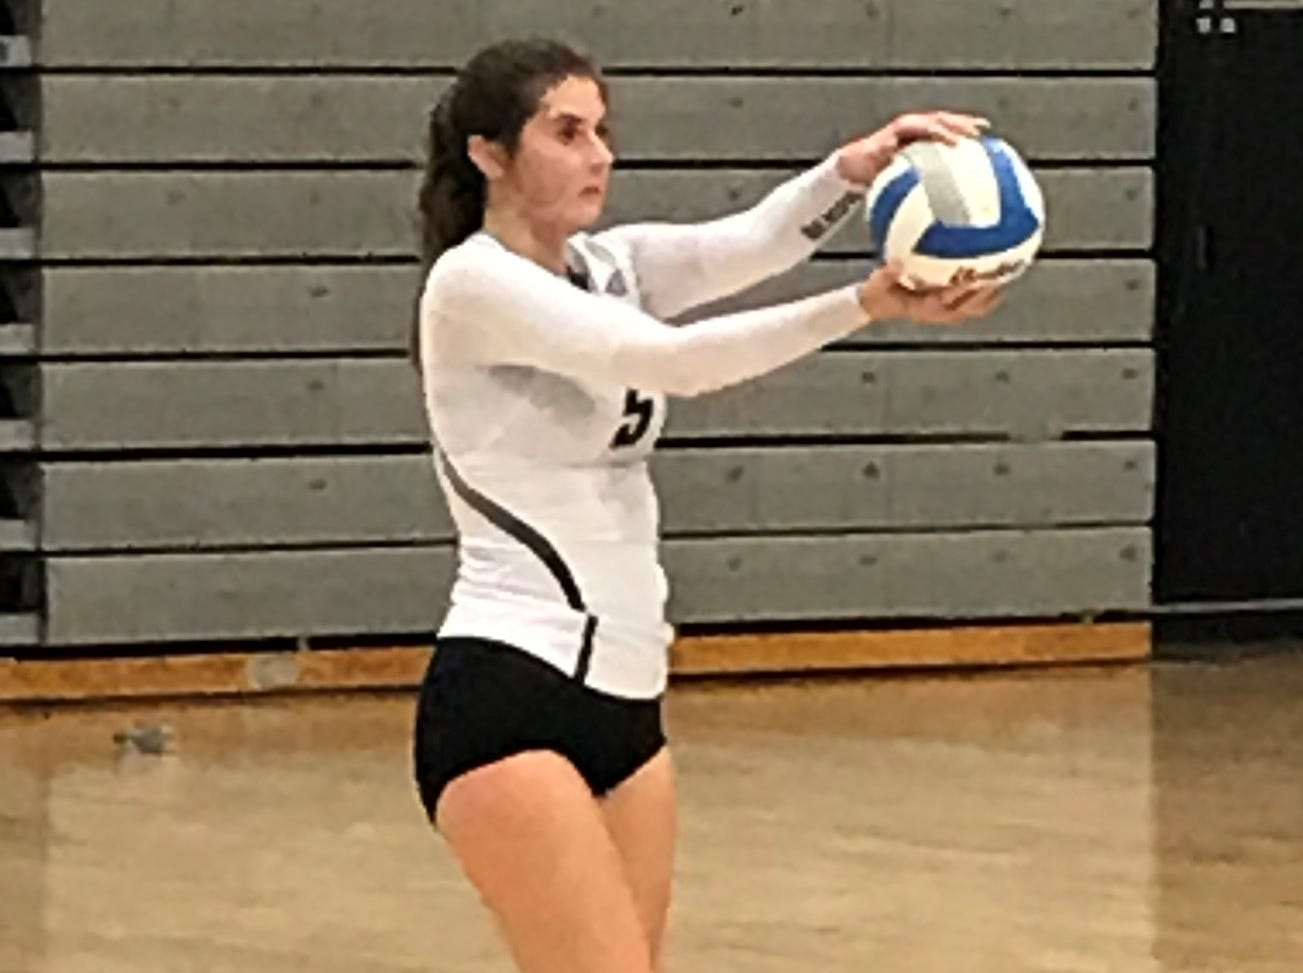 Getting set to serve for Plymouth is Hailey Wasik (5).